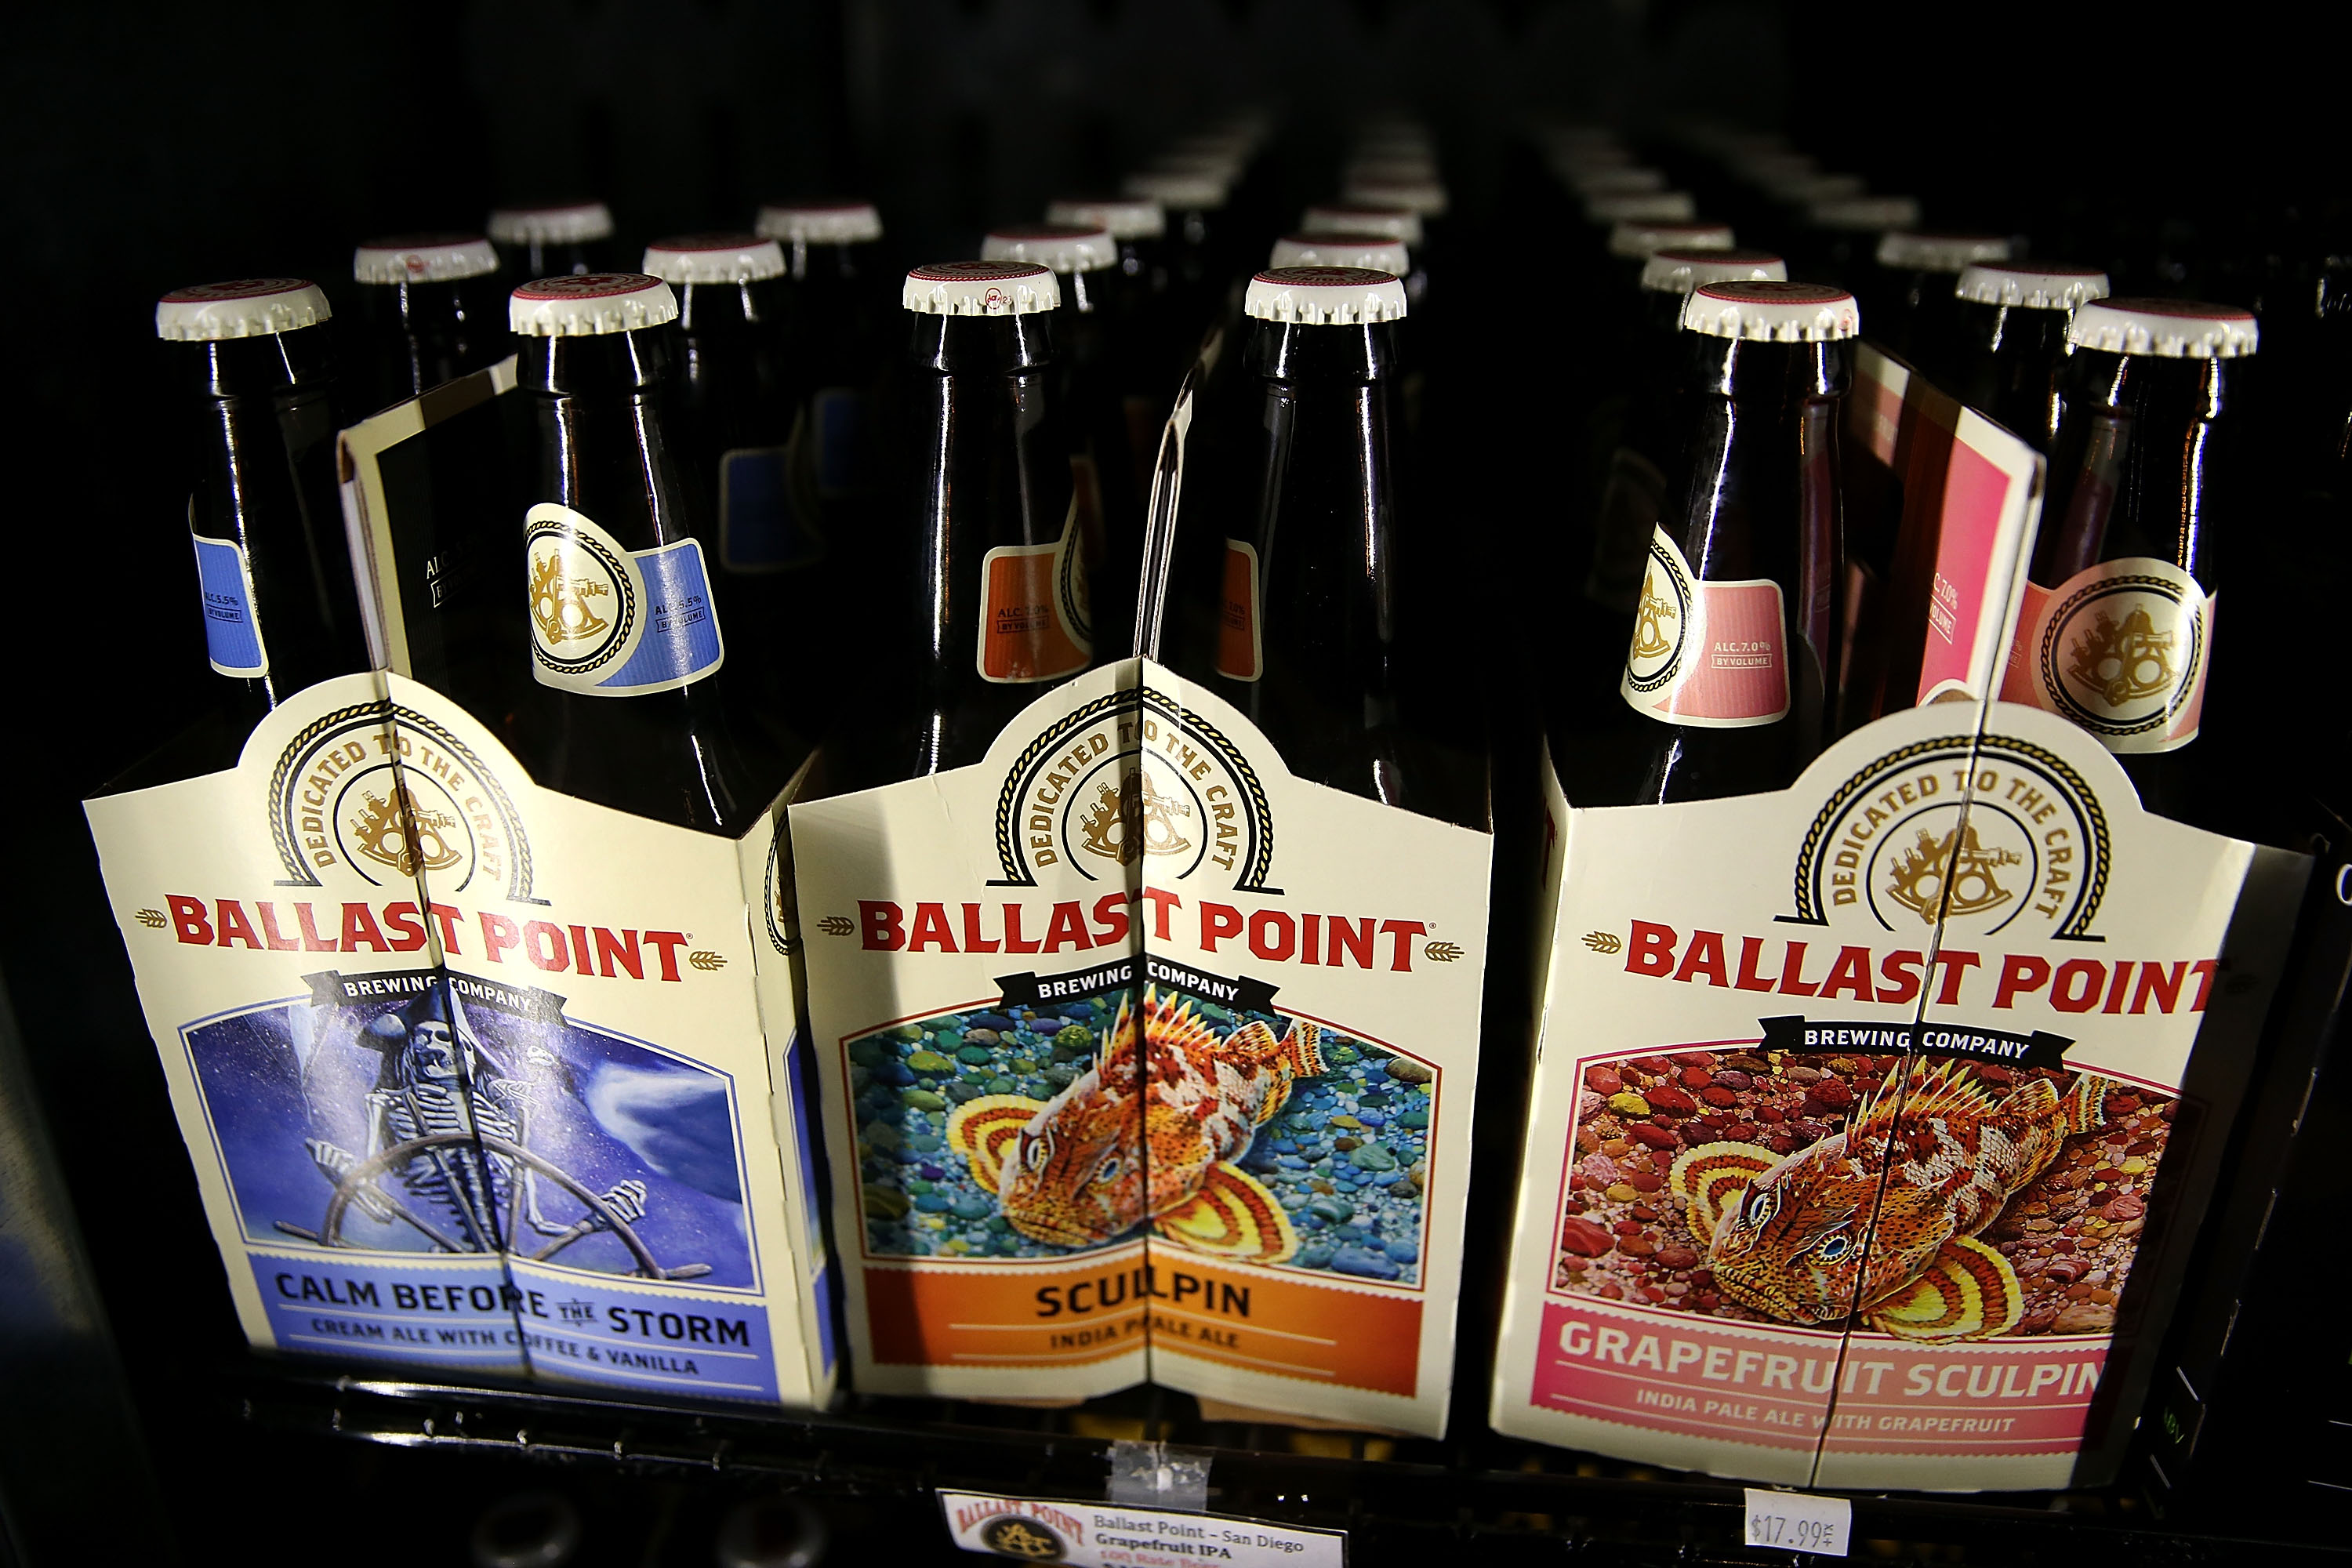 Six packs of ballast point beer